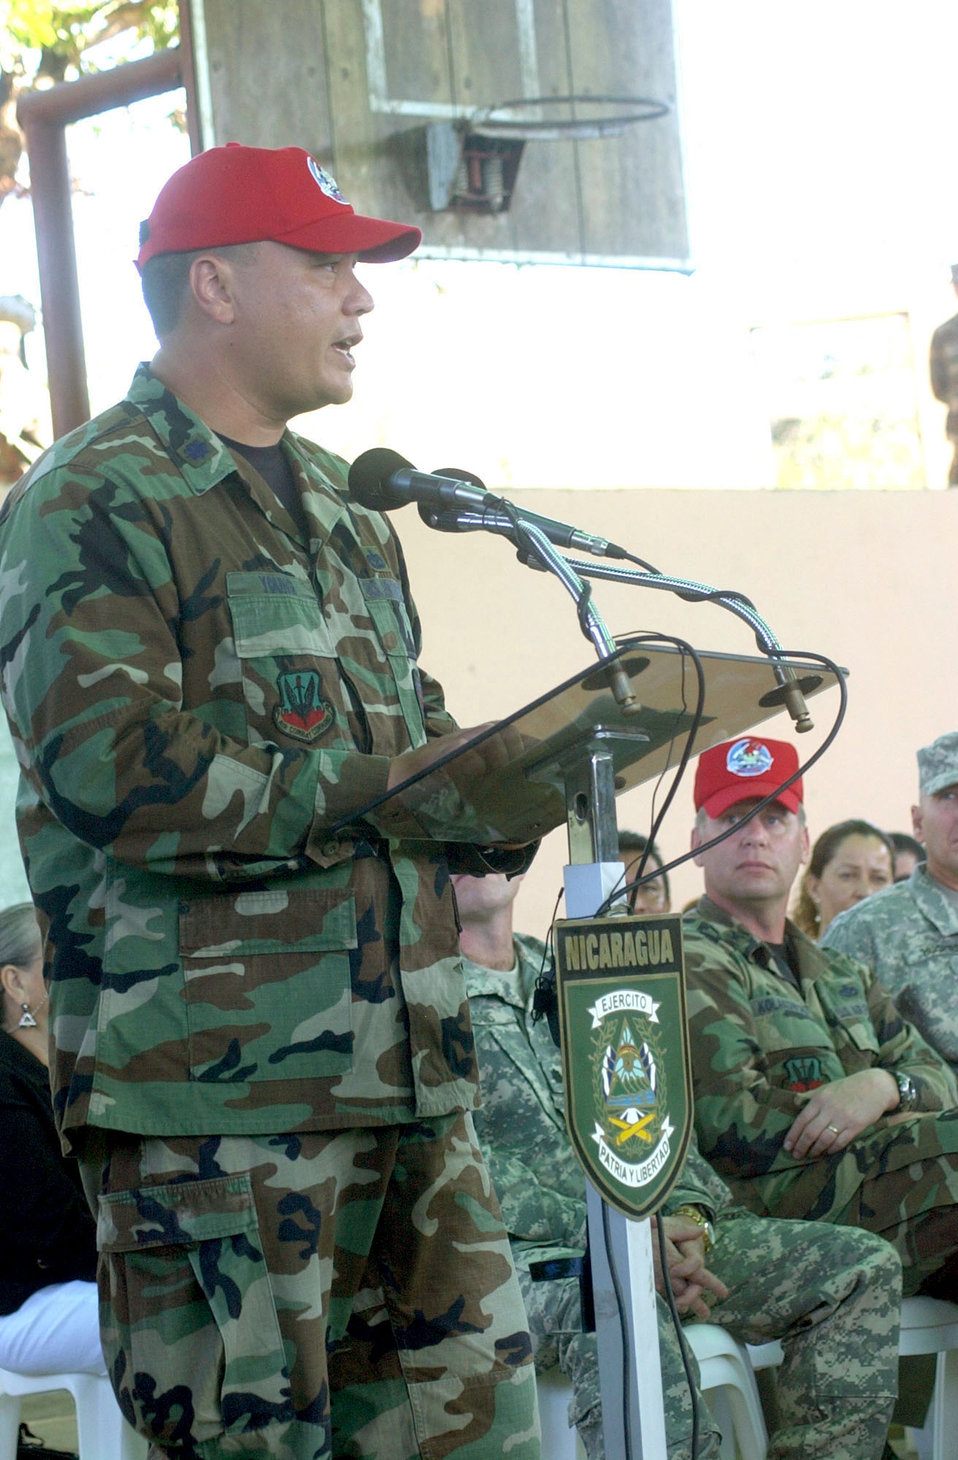 820th Red Horse starts 'New Horizons' project in Nicaragua